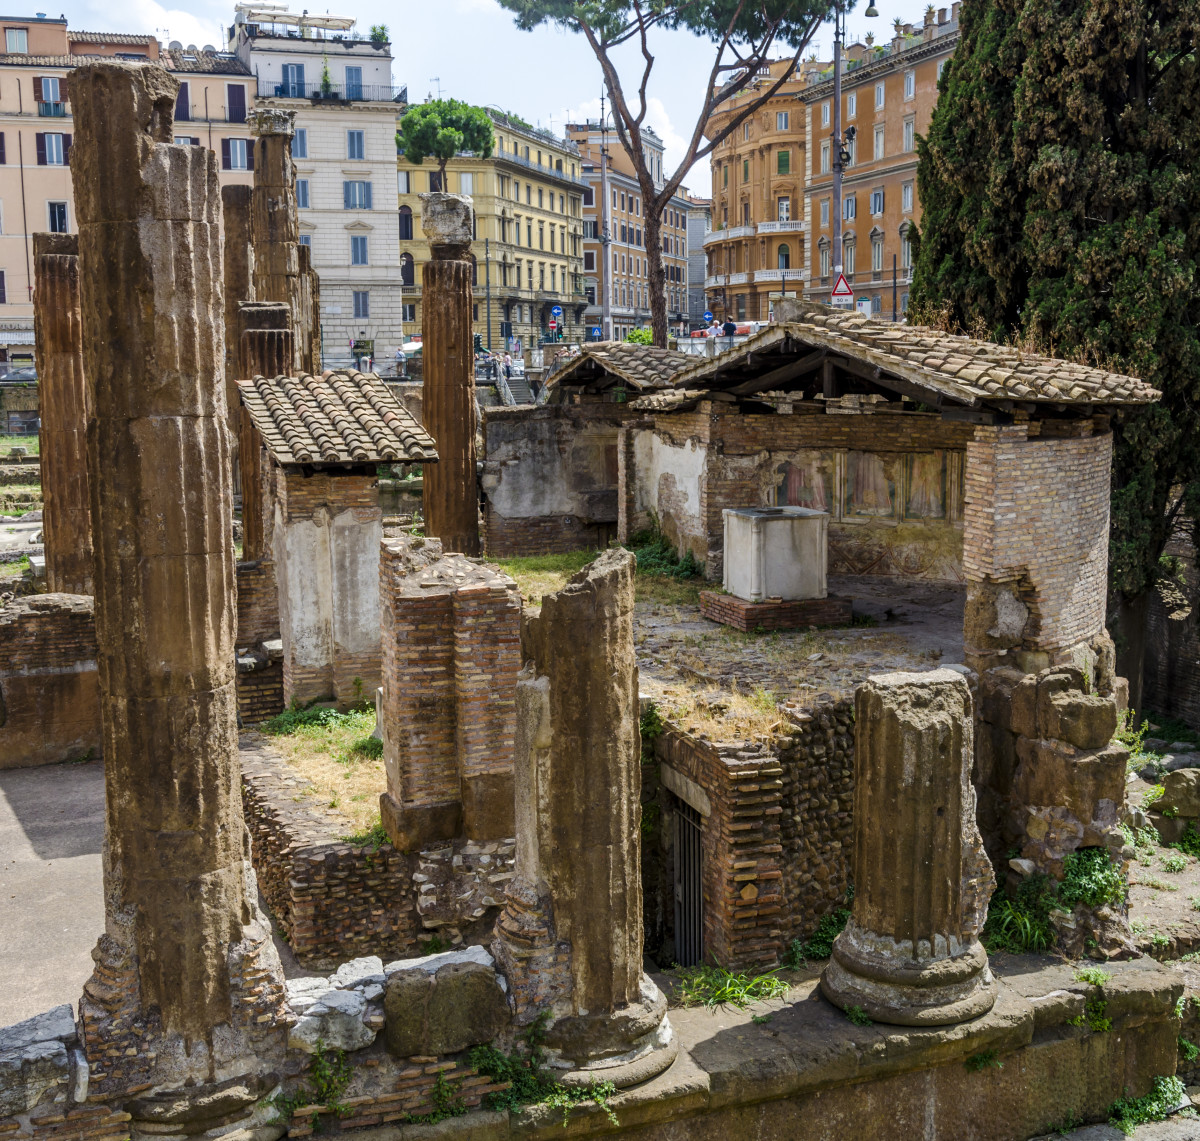 The Sacred Spring Of Juturna, Rome